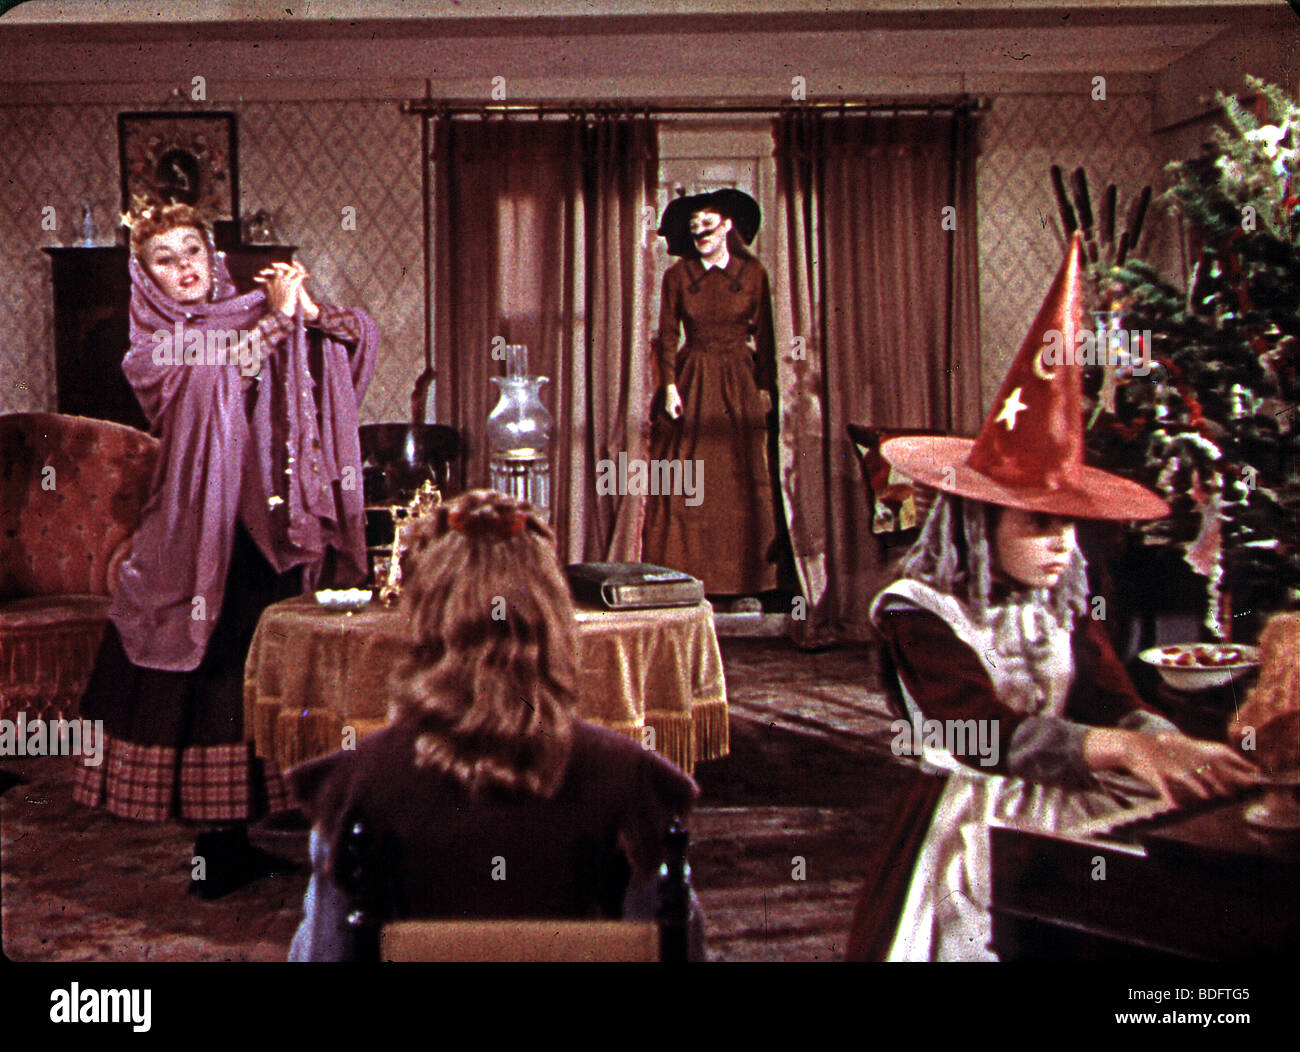 LITTLE WOMEN -1949 MGM film - Stock Image